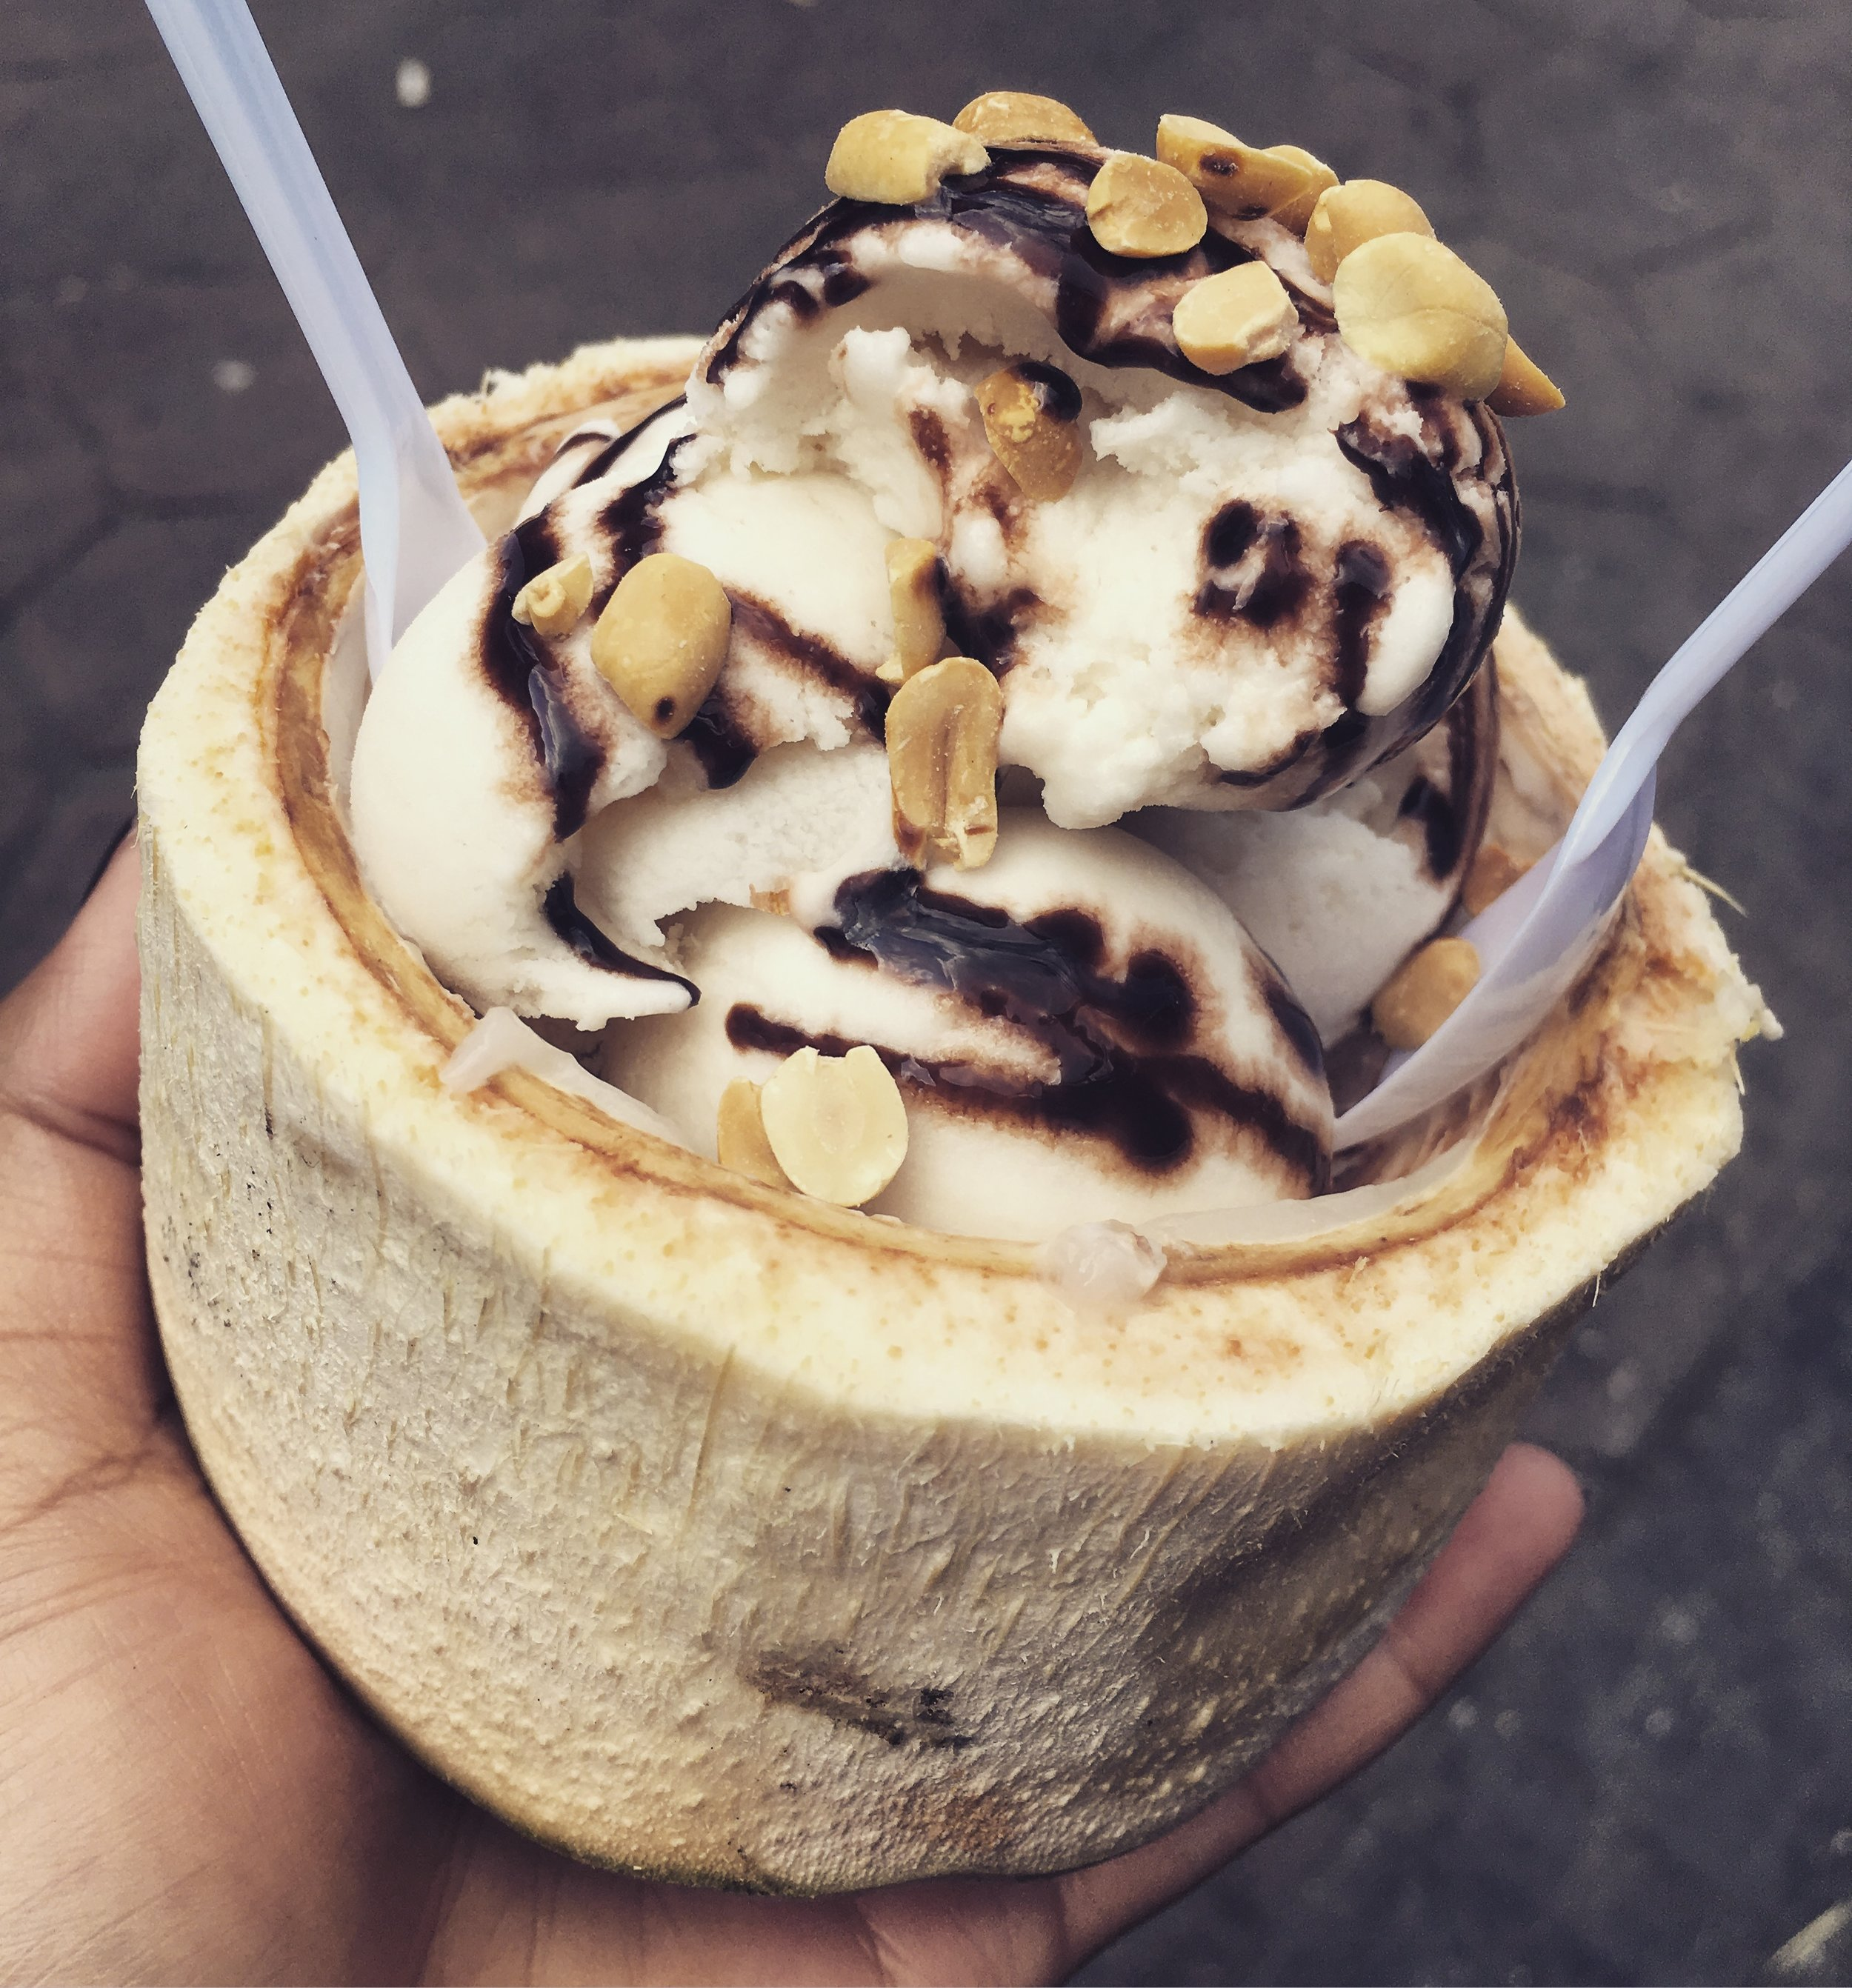 Coconut Ice Cream. Topped with any variety of jellies, nuts or similar. All served in the coconut's shell.